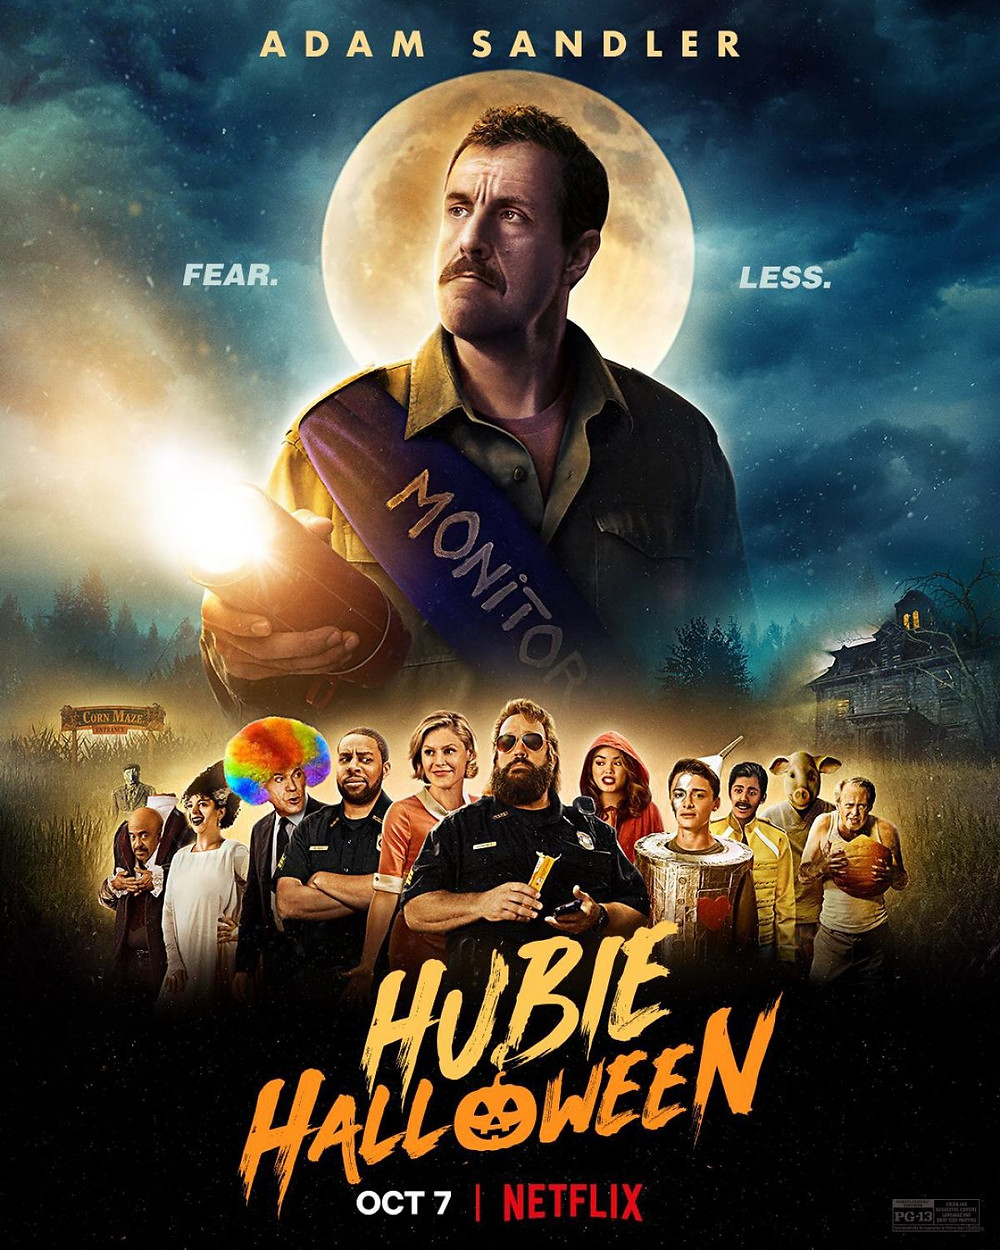 The poster for Hubie Halloween is intentionally over-dramatic. A massive Adam Sandler dominates the majority of the photo, set against a full-moon-background. Other members of the notable cast are layed-out beneath Sandler in far smaller scale.